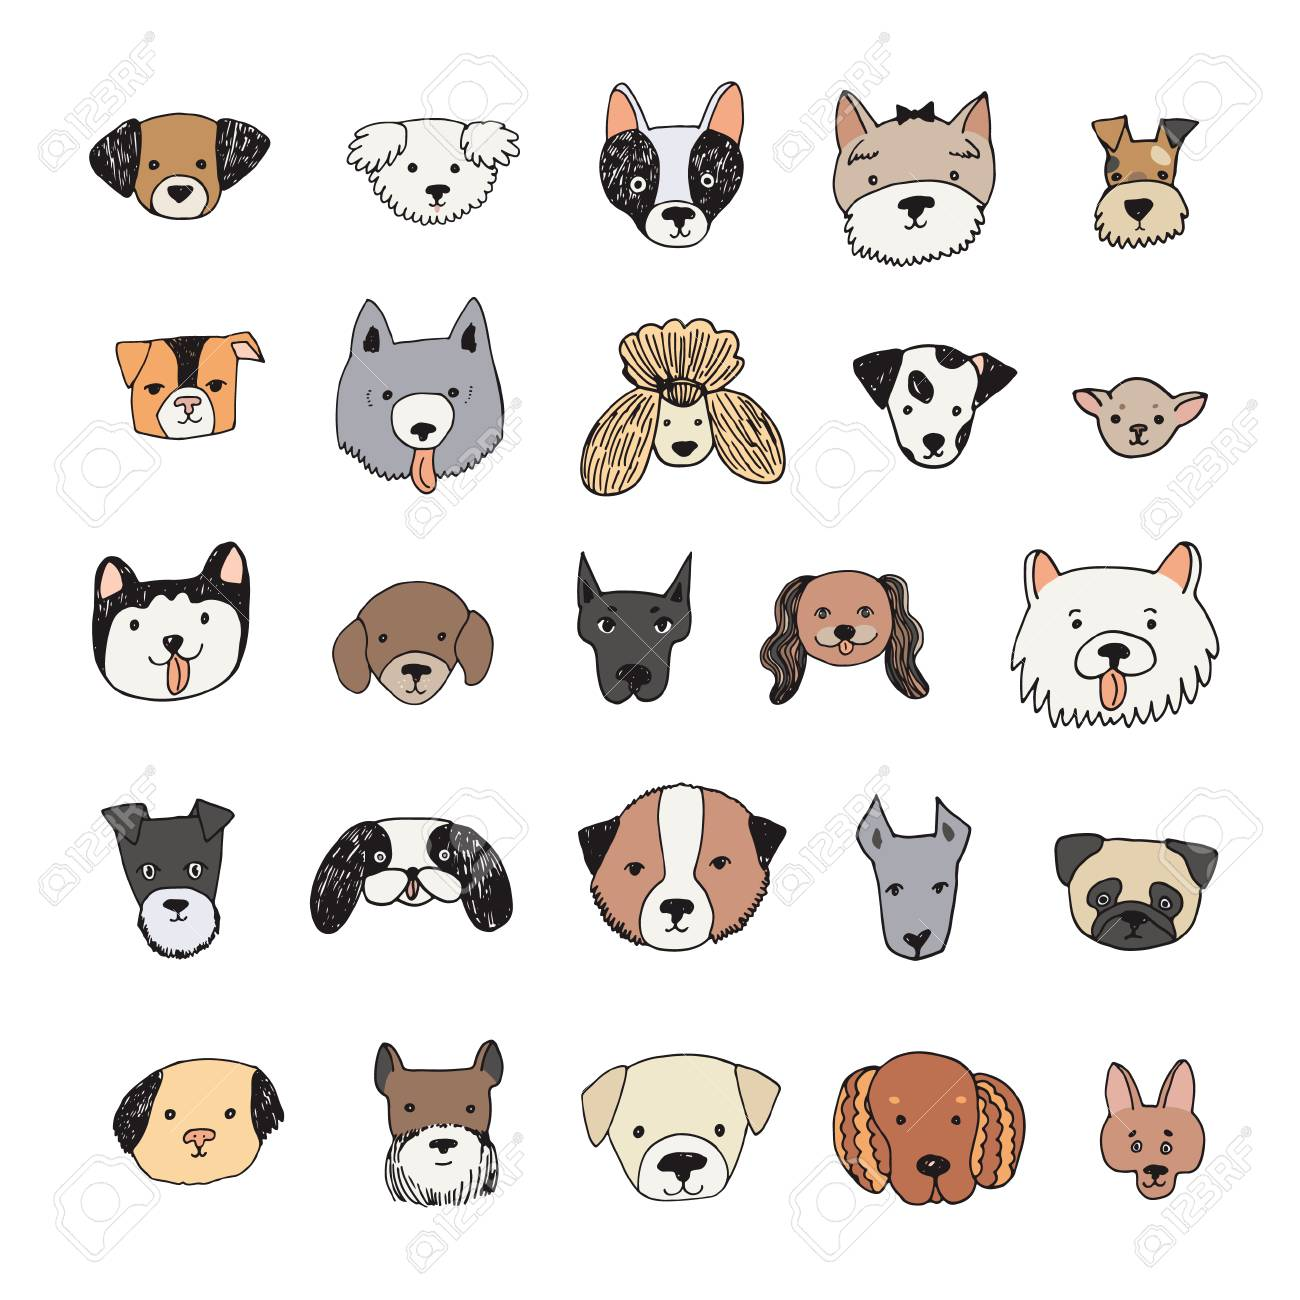 Dog Face Cartoon Vector Illustrations Set Royalty Free Cliparts Vectors And Stock Illustration Image 93960767